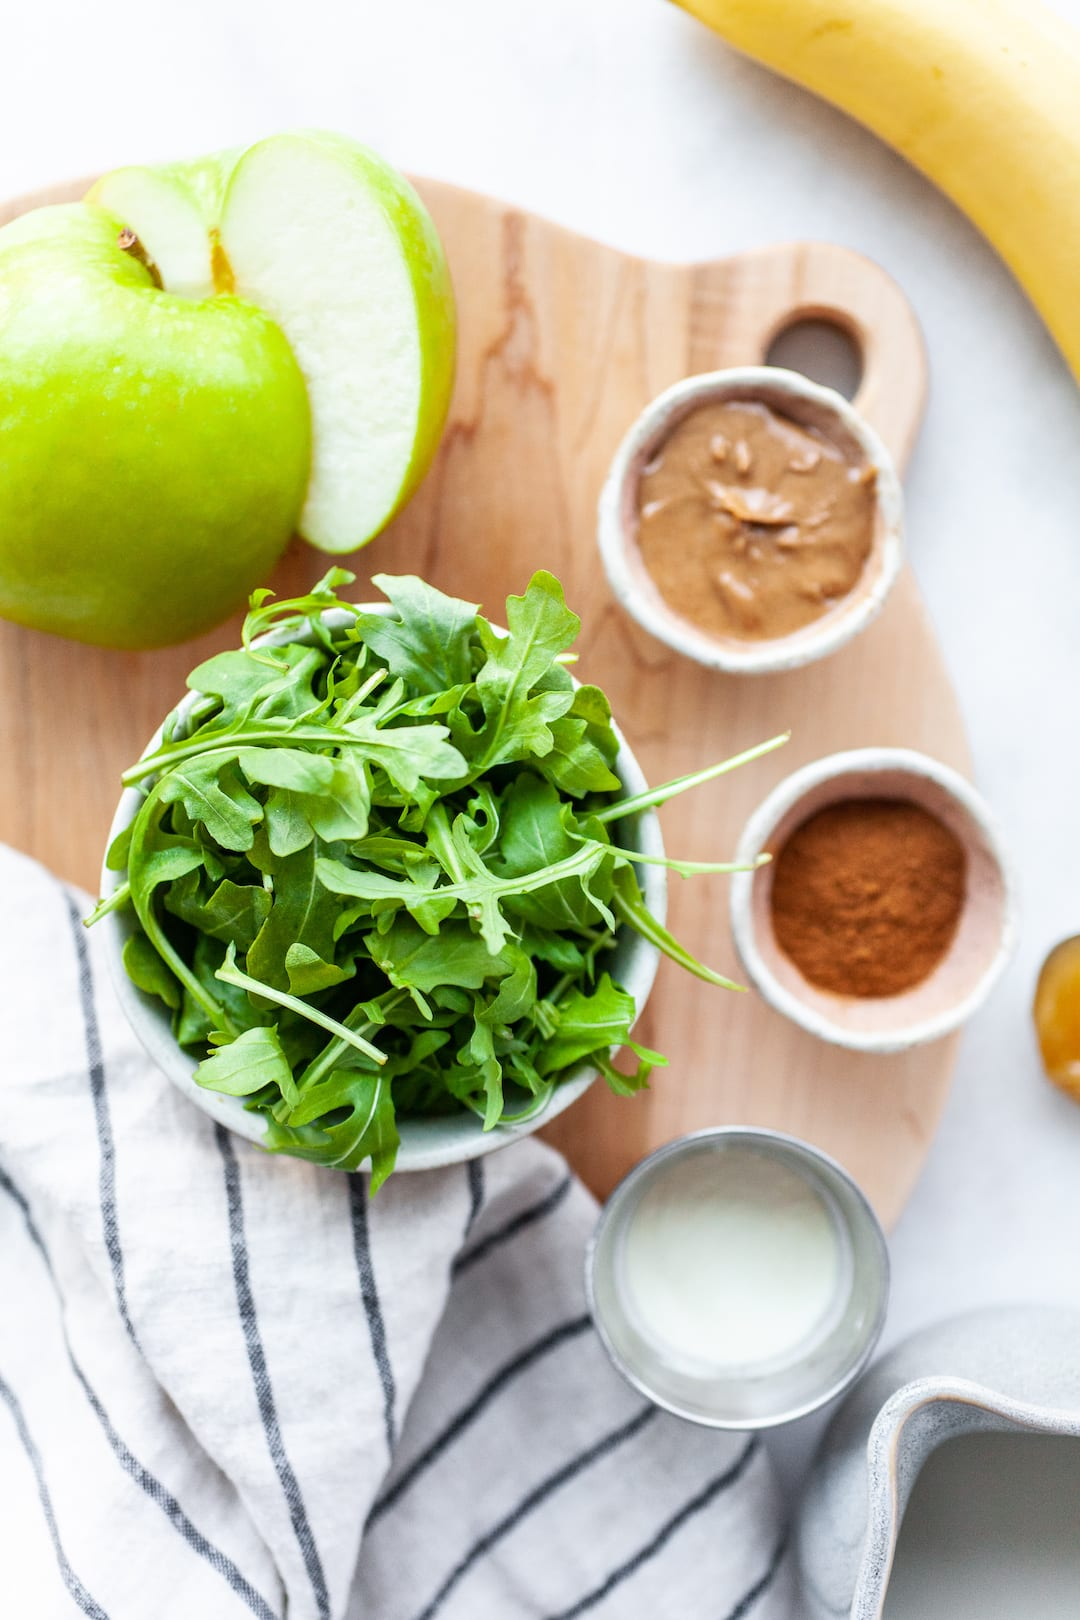 Ingredients for Delicious Arugula Smoothie Recipe spread out on a table